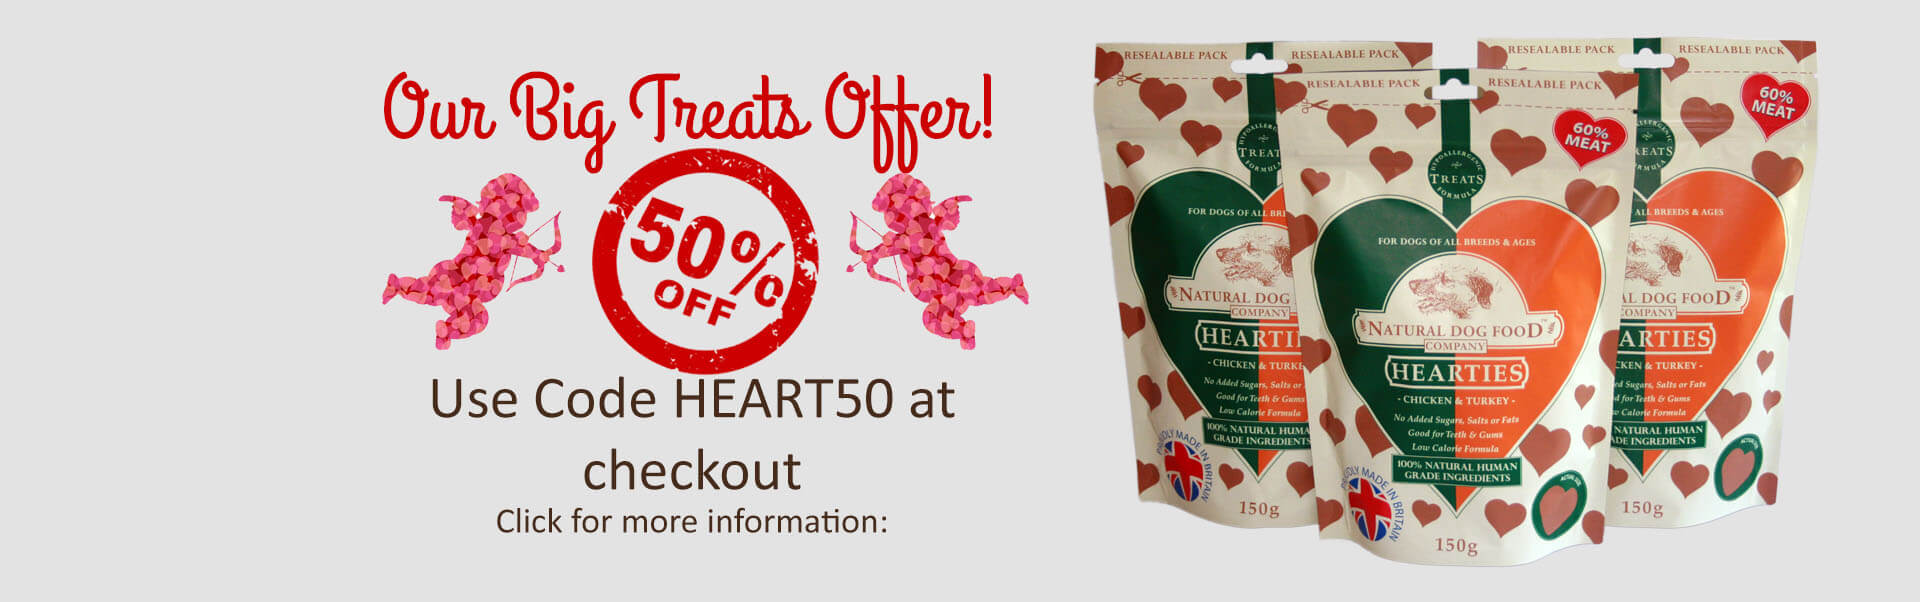 February Treats offer